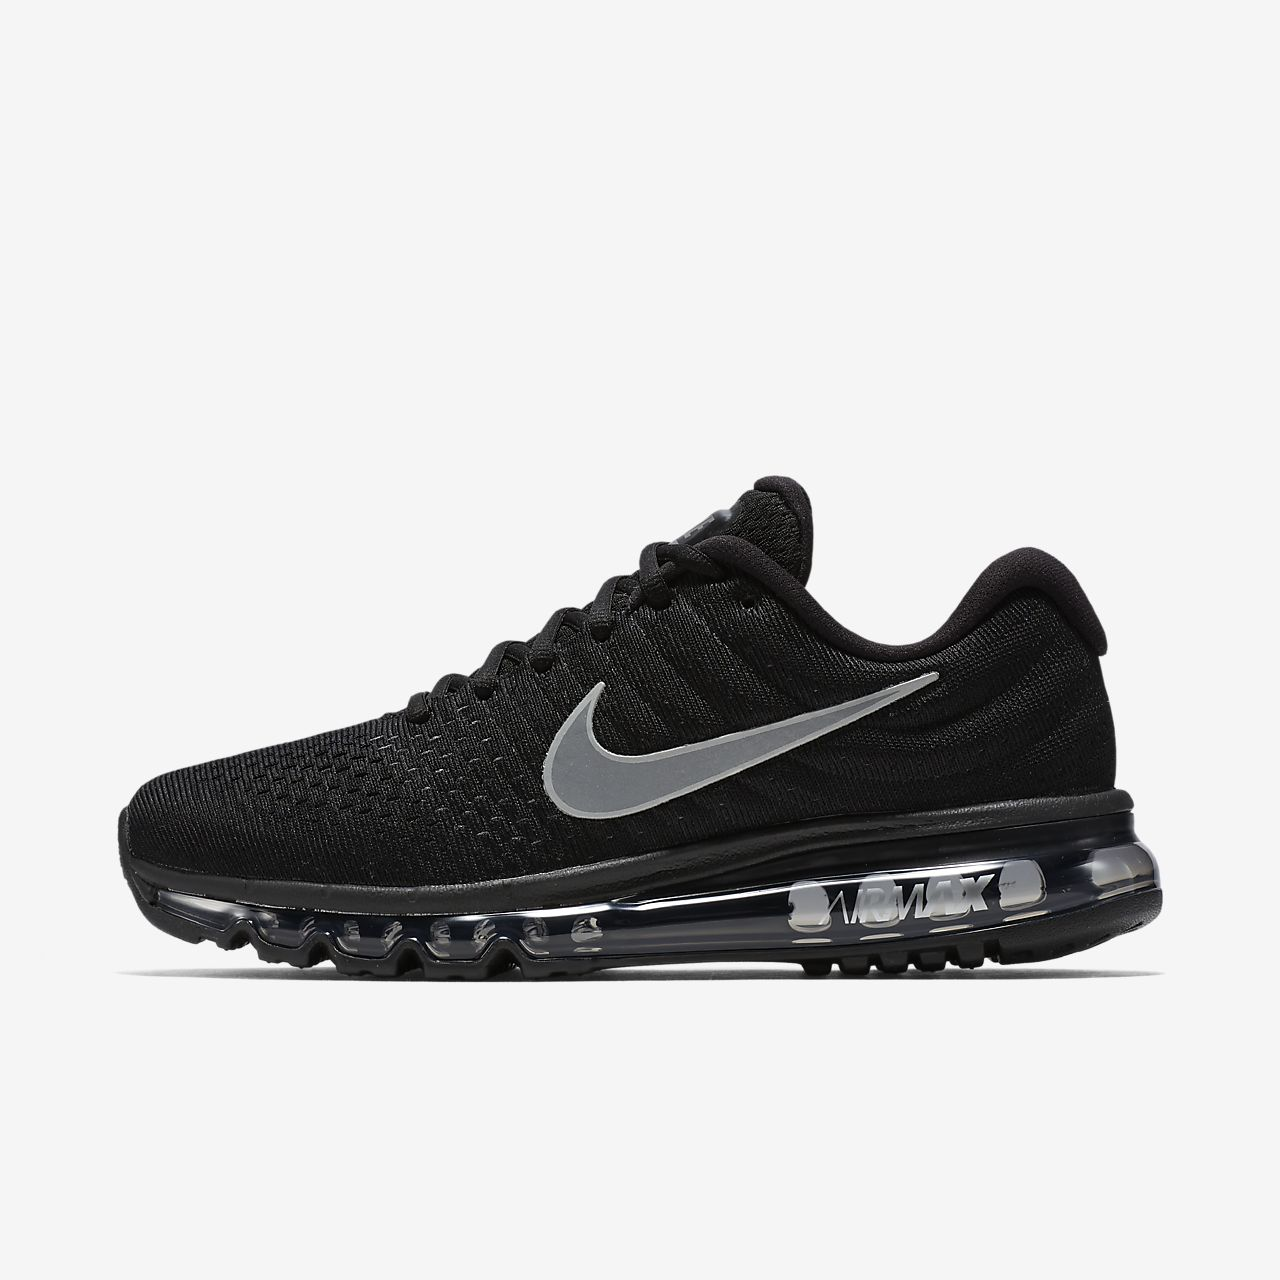 Nike Air Max Men : Up to 60% off Buy Nike Shoes at